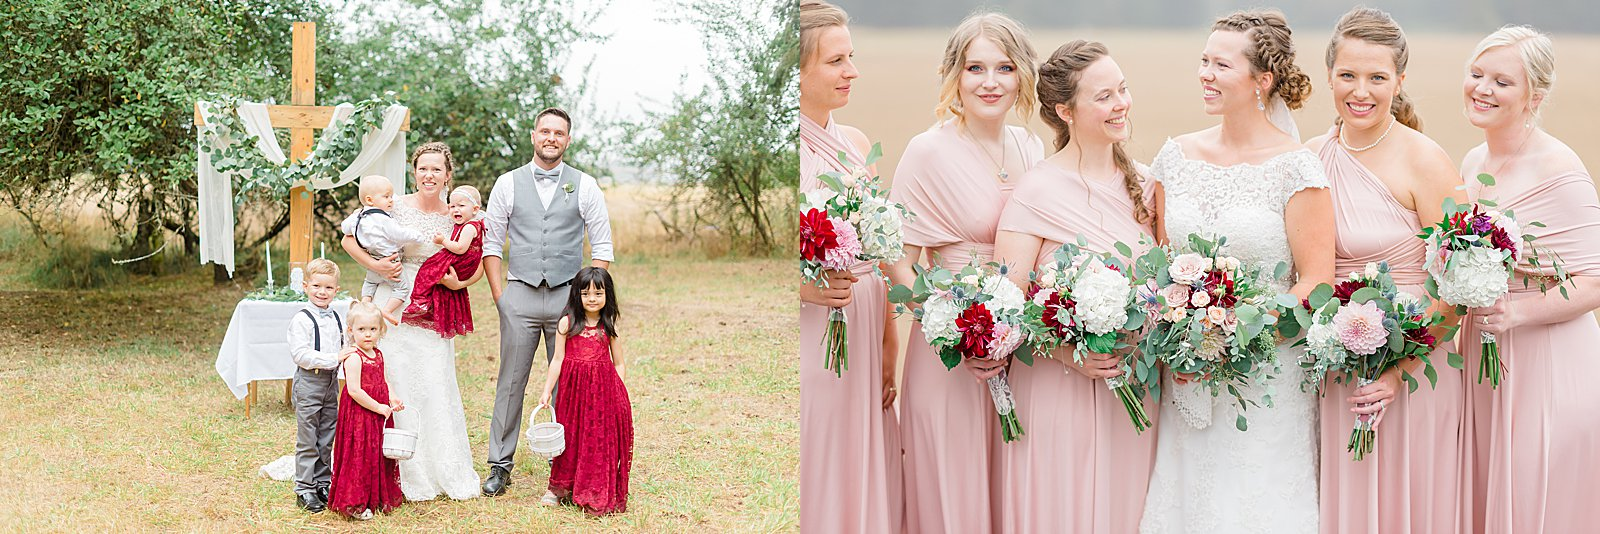 My favorite wedding purchases from Etsy - flower girl and bridesmaid dresses